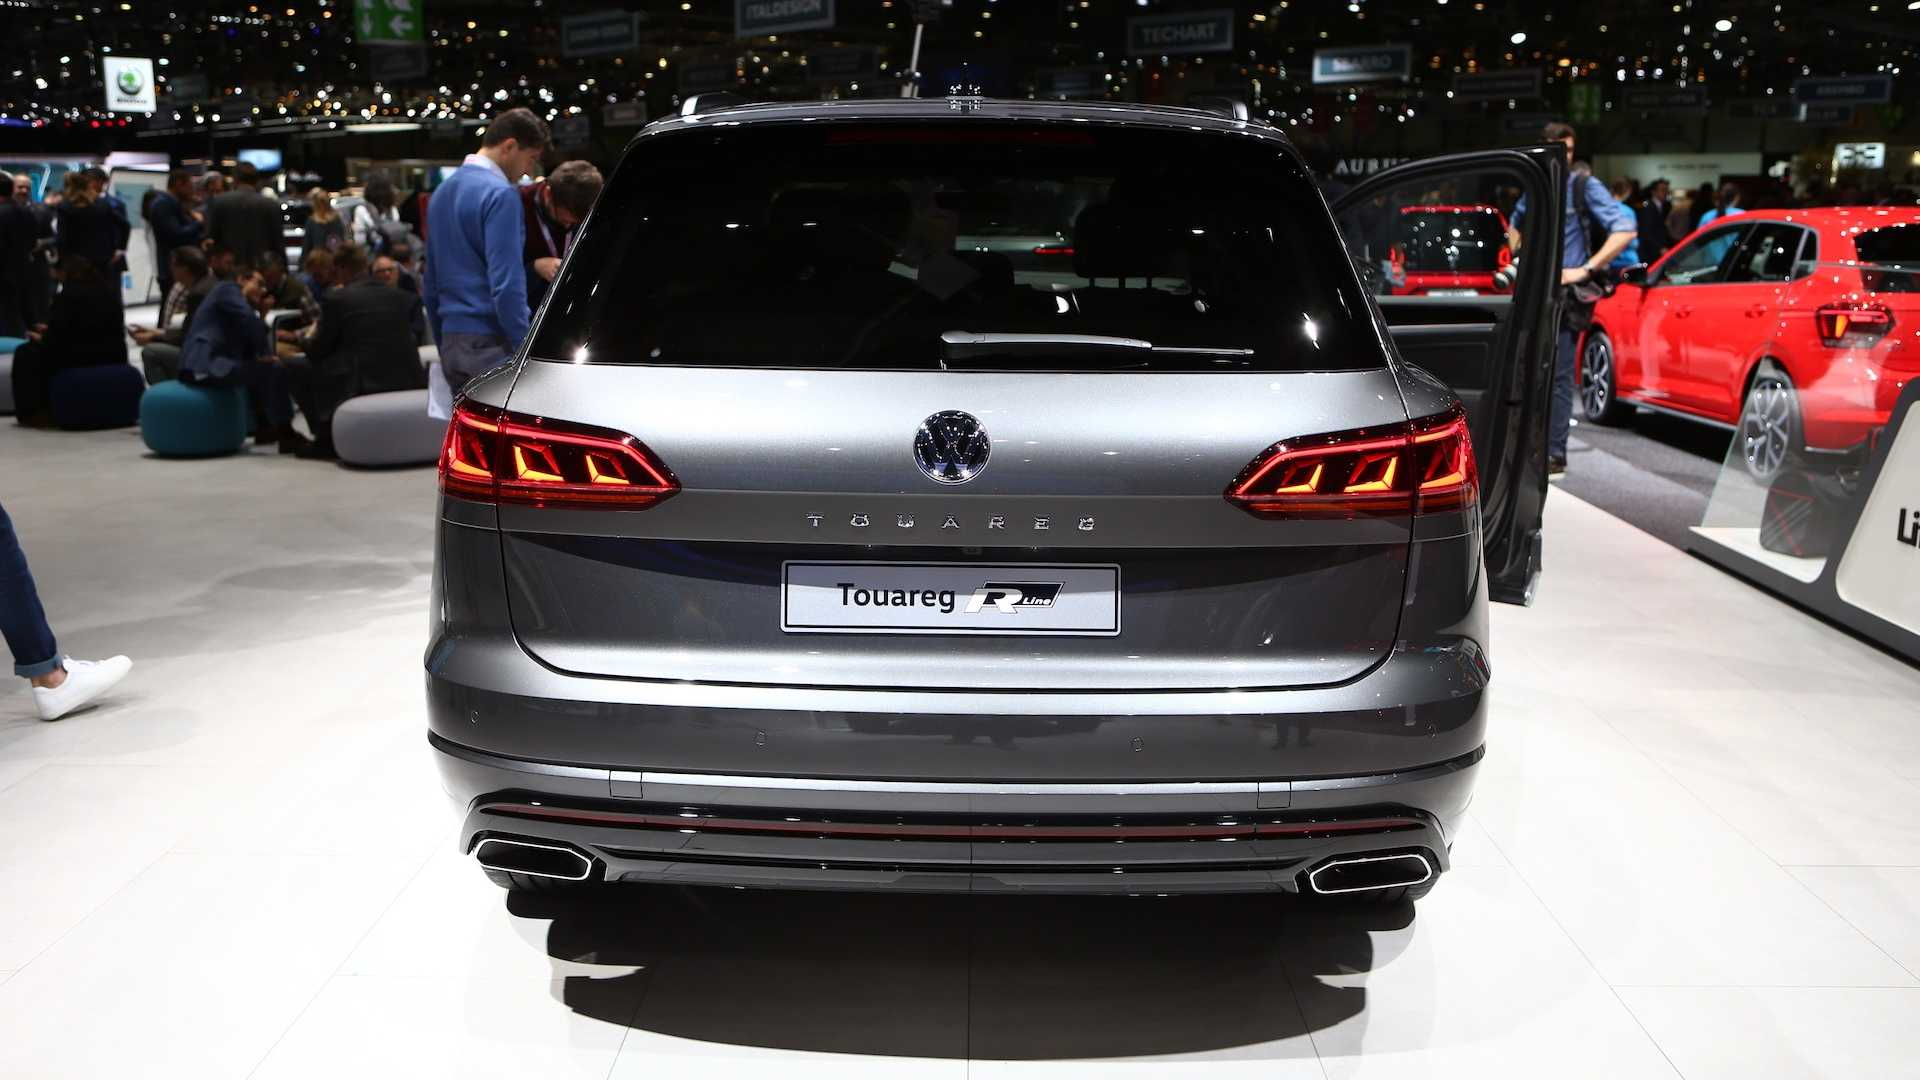 22 All New 2020 Volkswagen Touareg Images